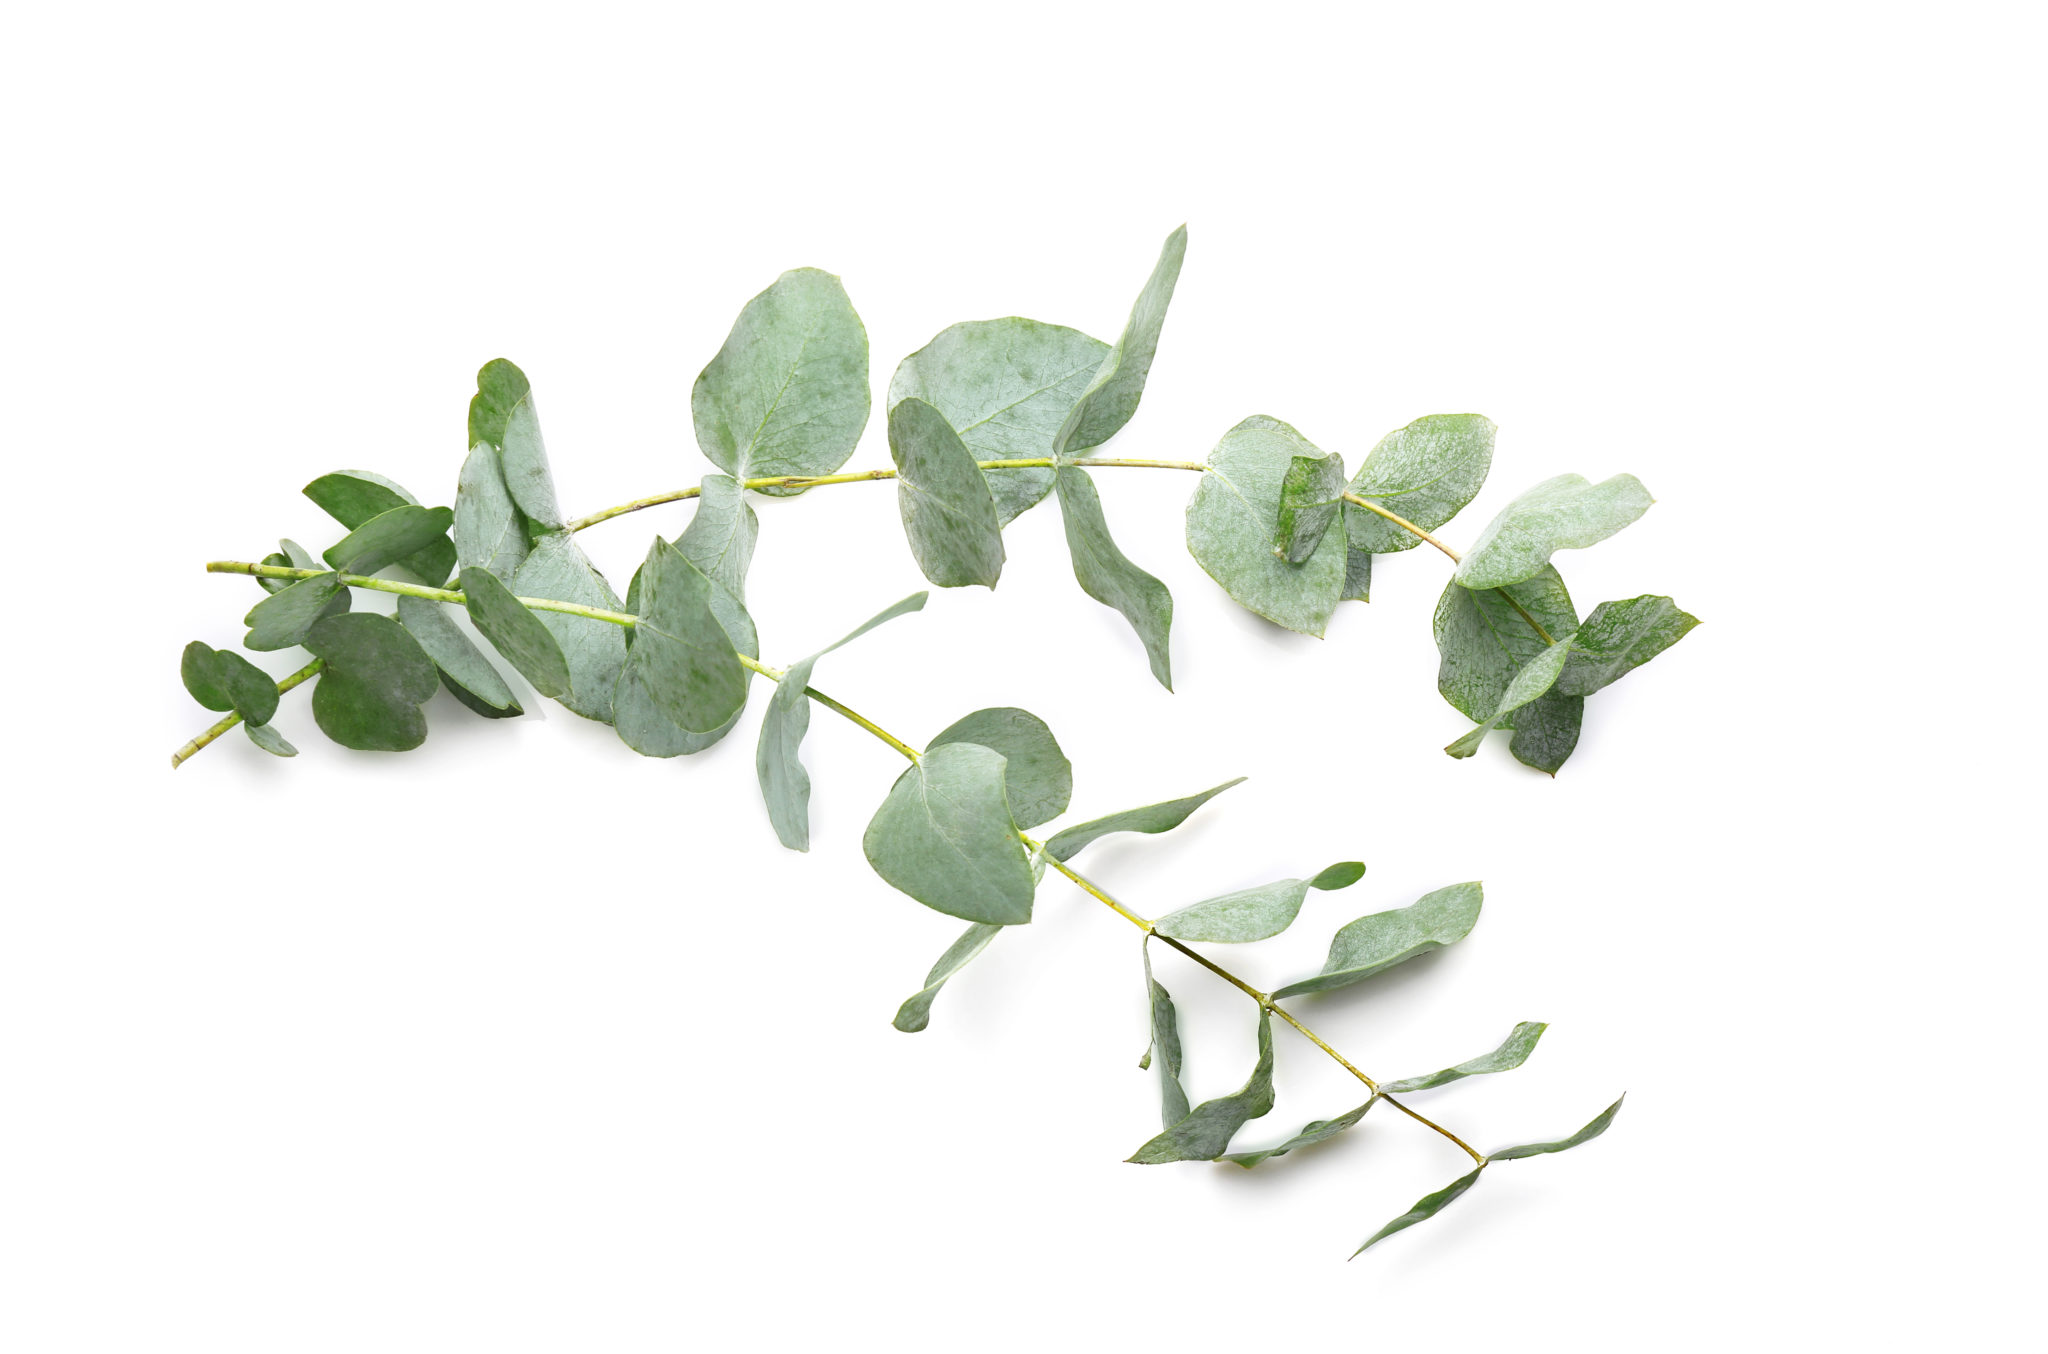 Inspirational Quotes Clean Wallpaper Eucalyptus The Essential Oil Of Spring Cleaning